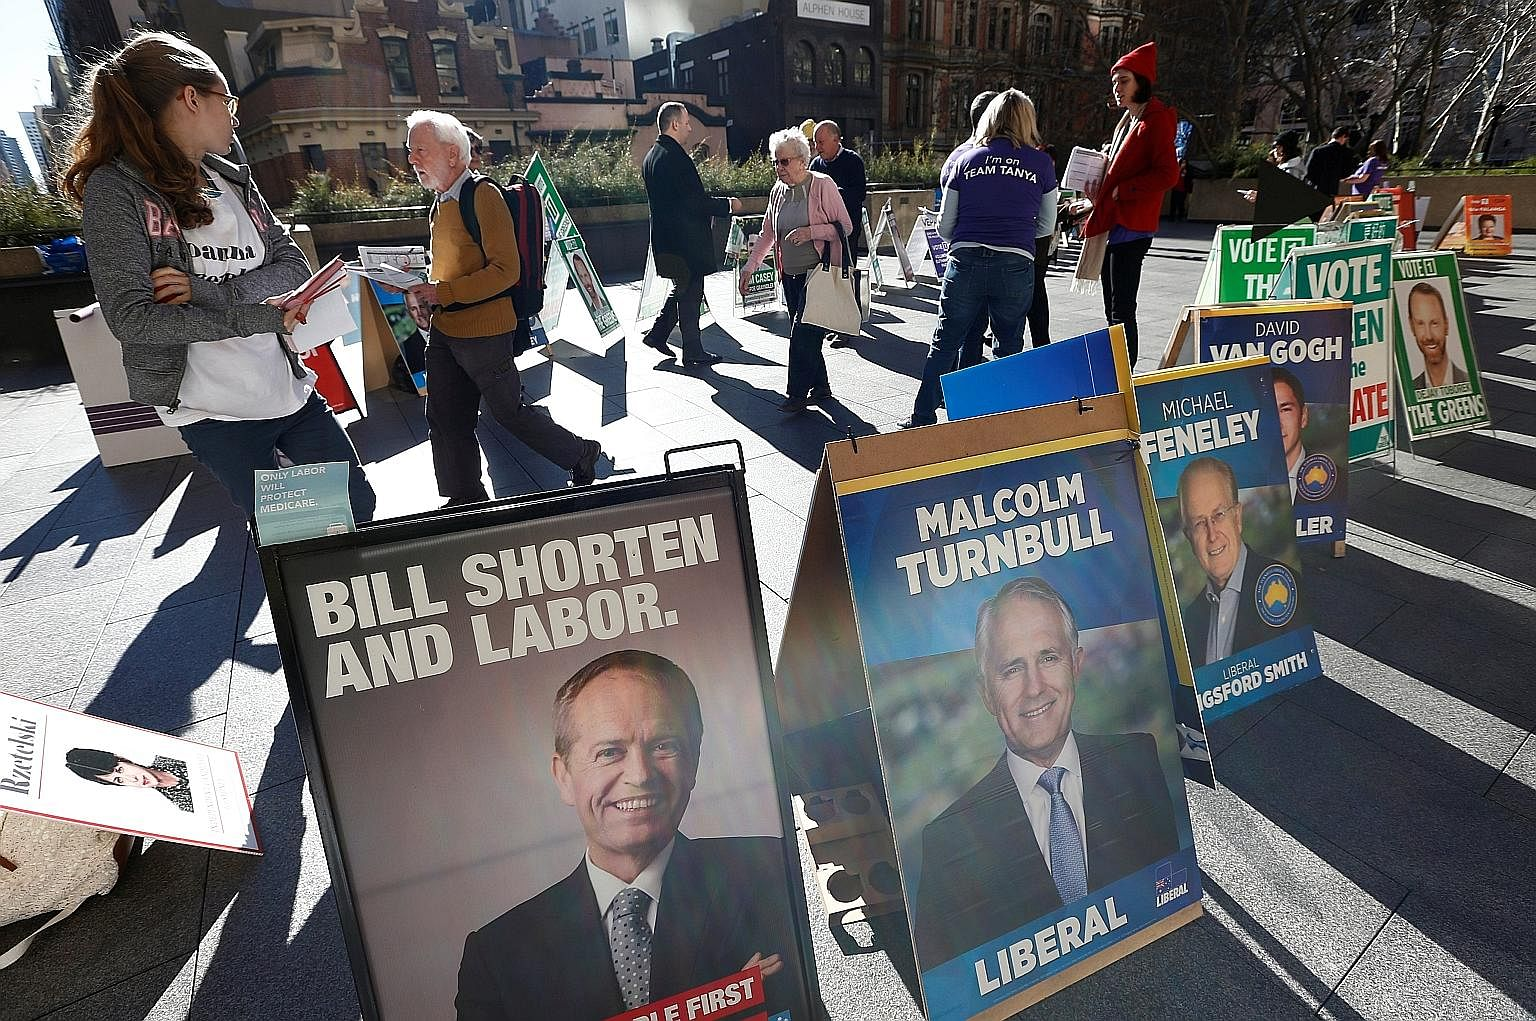 Candidates like Mr Shorten (above, left, featured in a promotional poster near a Sydney polling centre) and Mr Turnbull have mostly kept their campaigns free of the vitriol seen in other recent political contests.